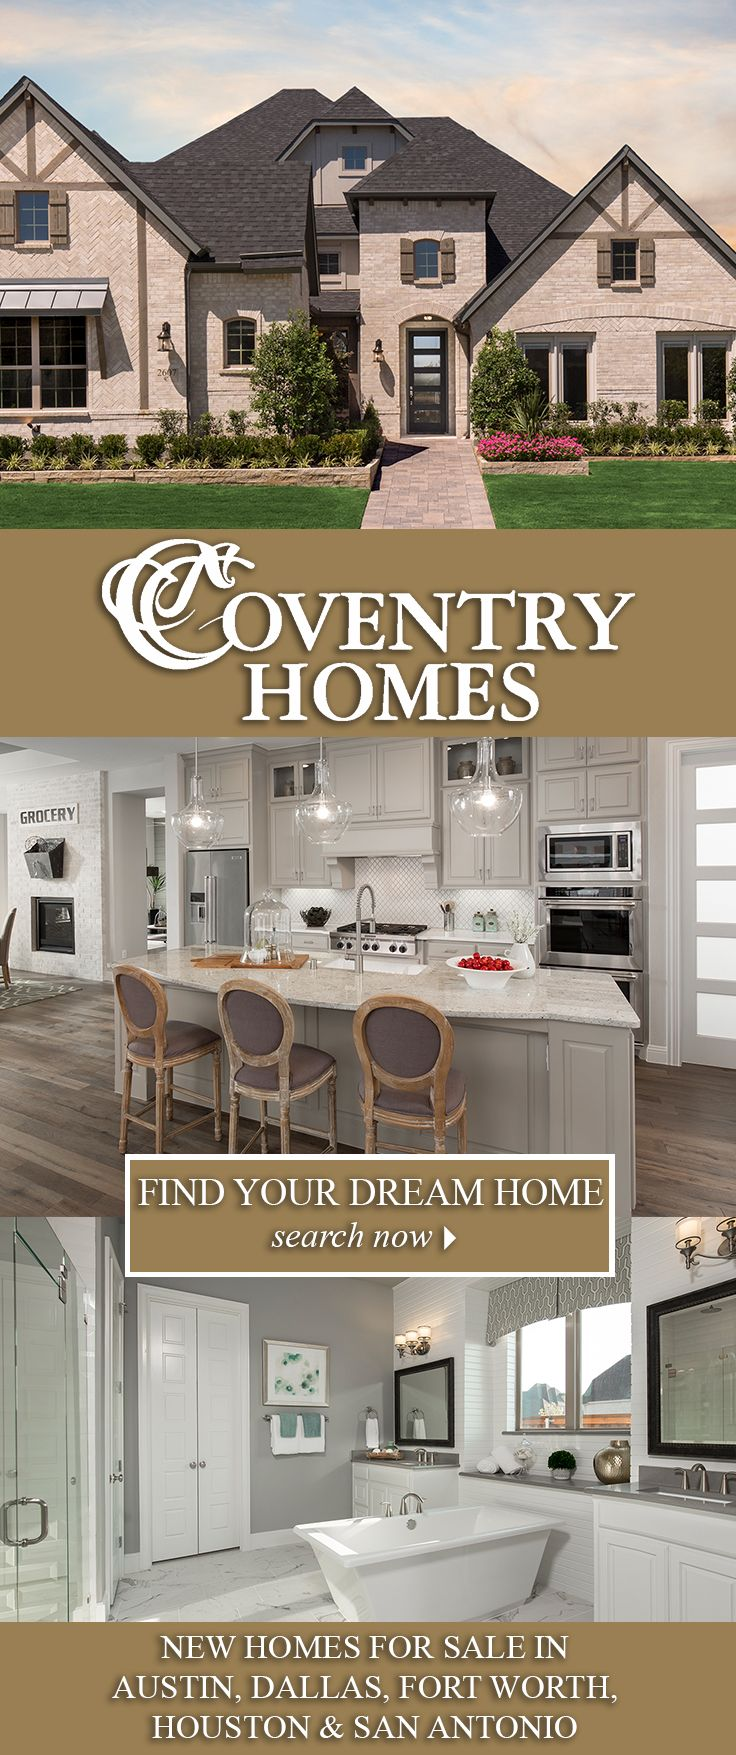 Coventry Homes Offers Beautiful New Homes And Floor Plans That Set The Foundation For Each Of The Memorable Mom Coventry Homes House Design Building A New Home